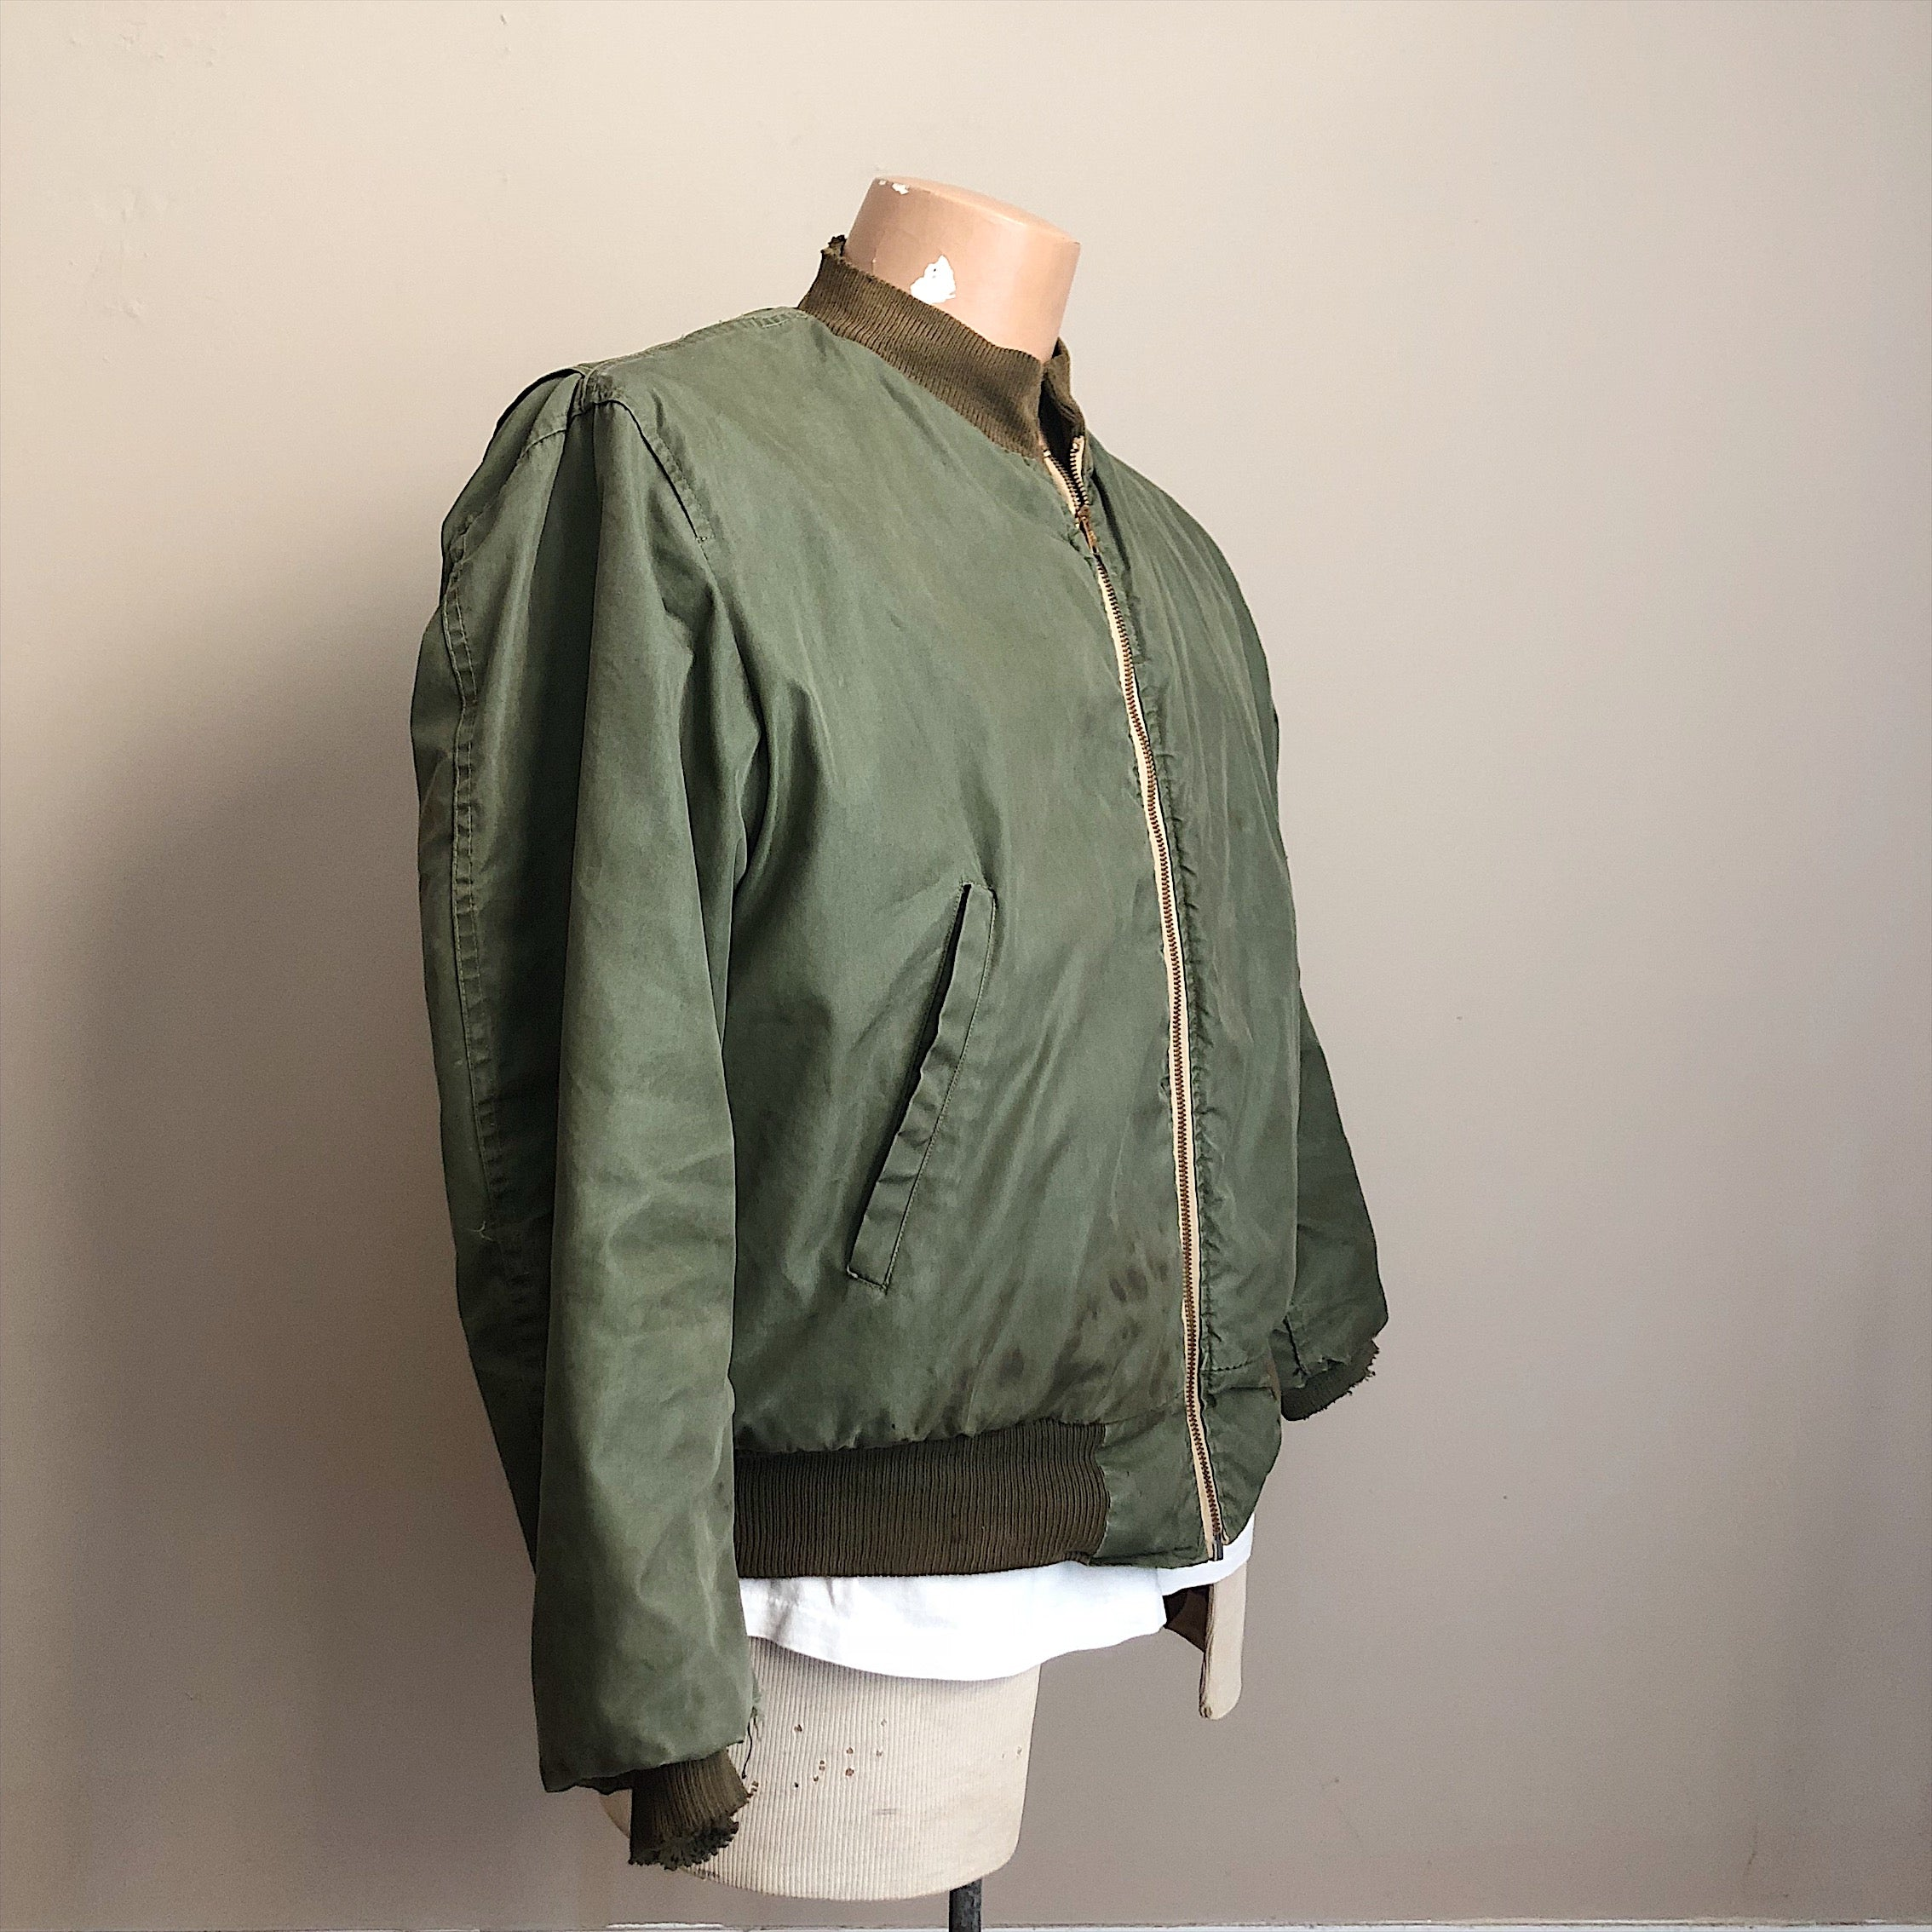 Left side view of Authentic WW2 Tanker Jacket